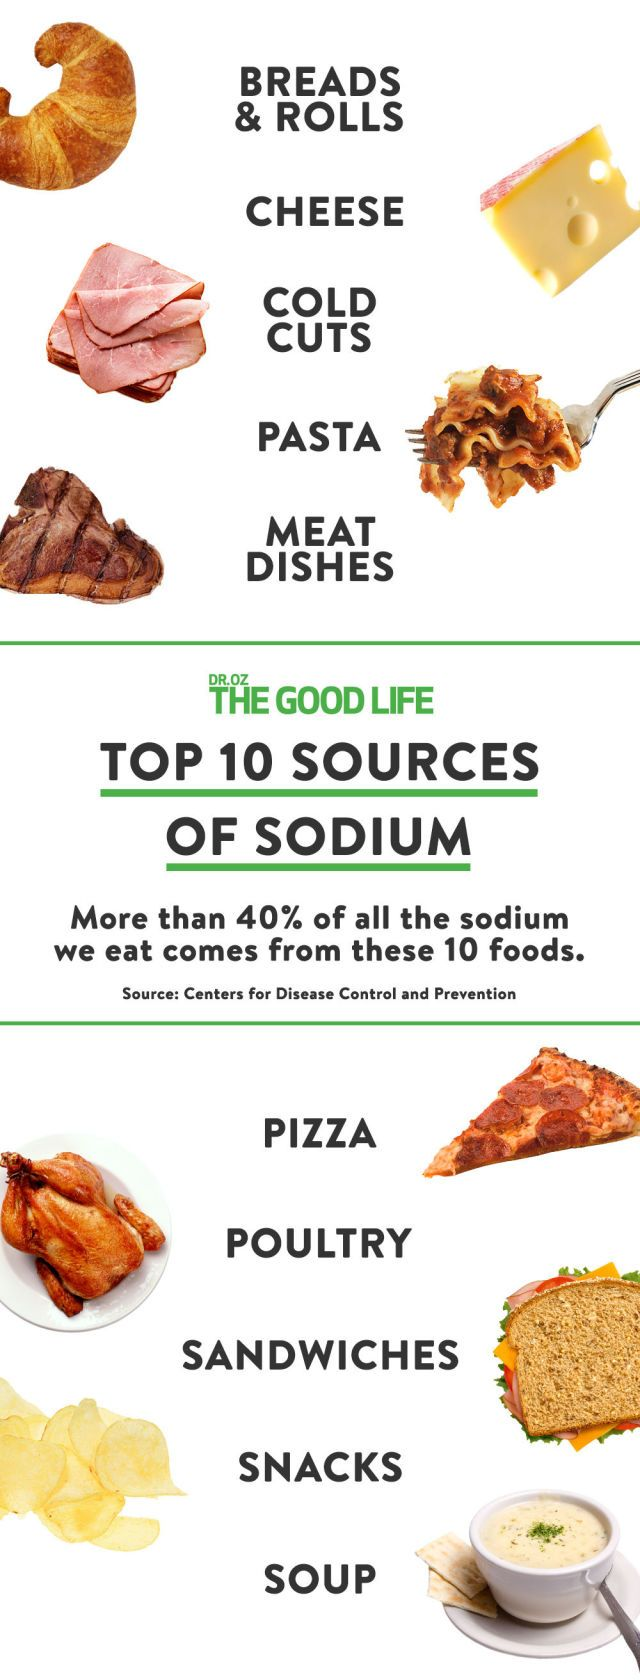 The Top Ten Sources of Sodium in Your Diet Are Not What You'd Expect